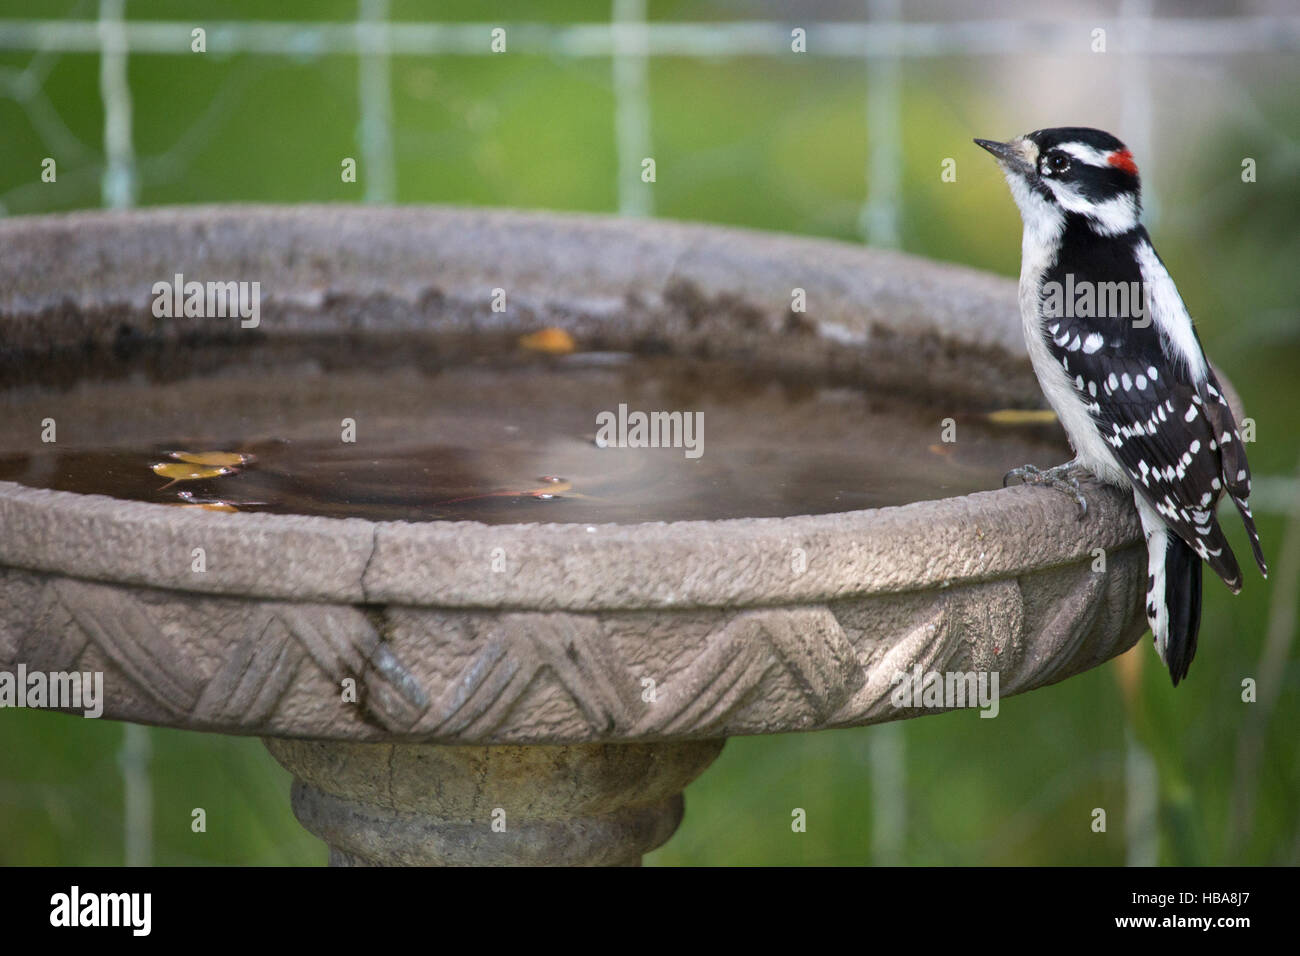 Male Downy Woodpecker perched on bird bath in yard (Picoides pubescens) - Stock Image